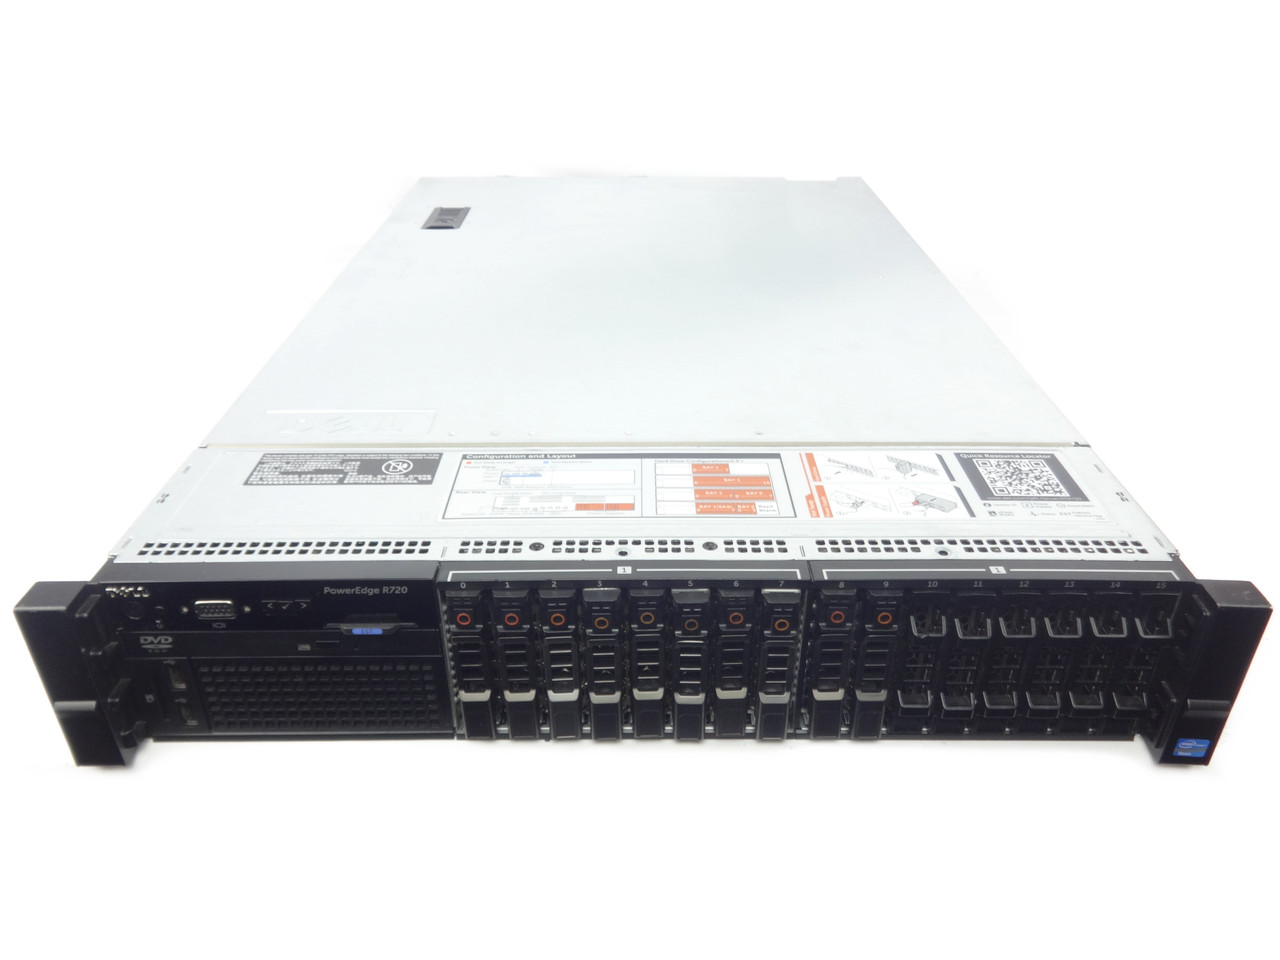 Poweredge R720 16 Bay Server